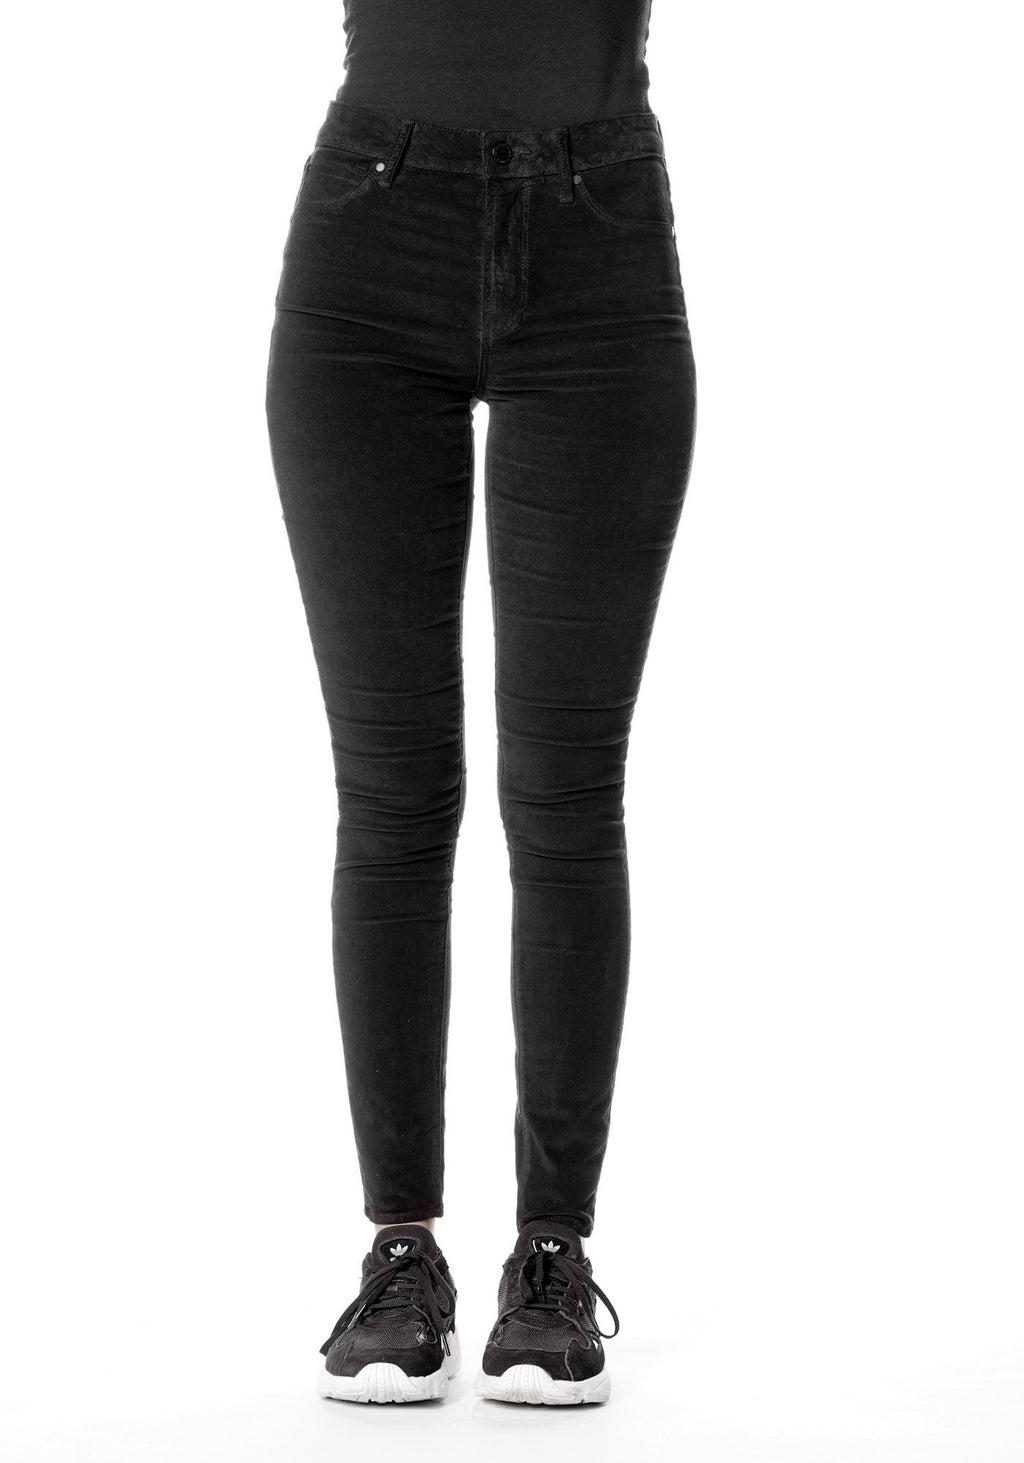 Articles of Society Black Velvet Hilary Jeans